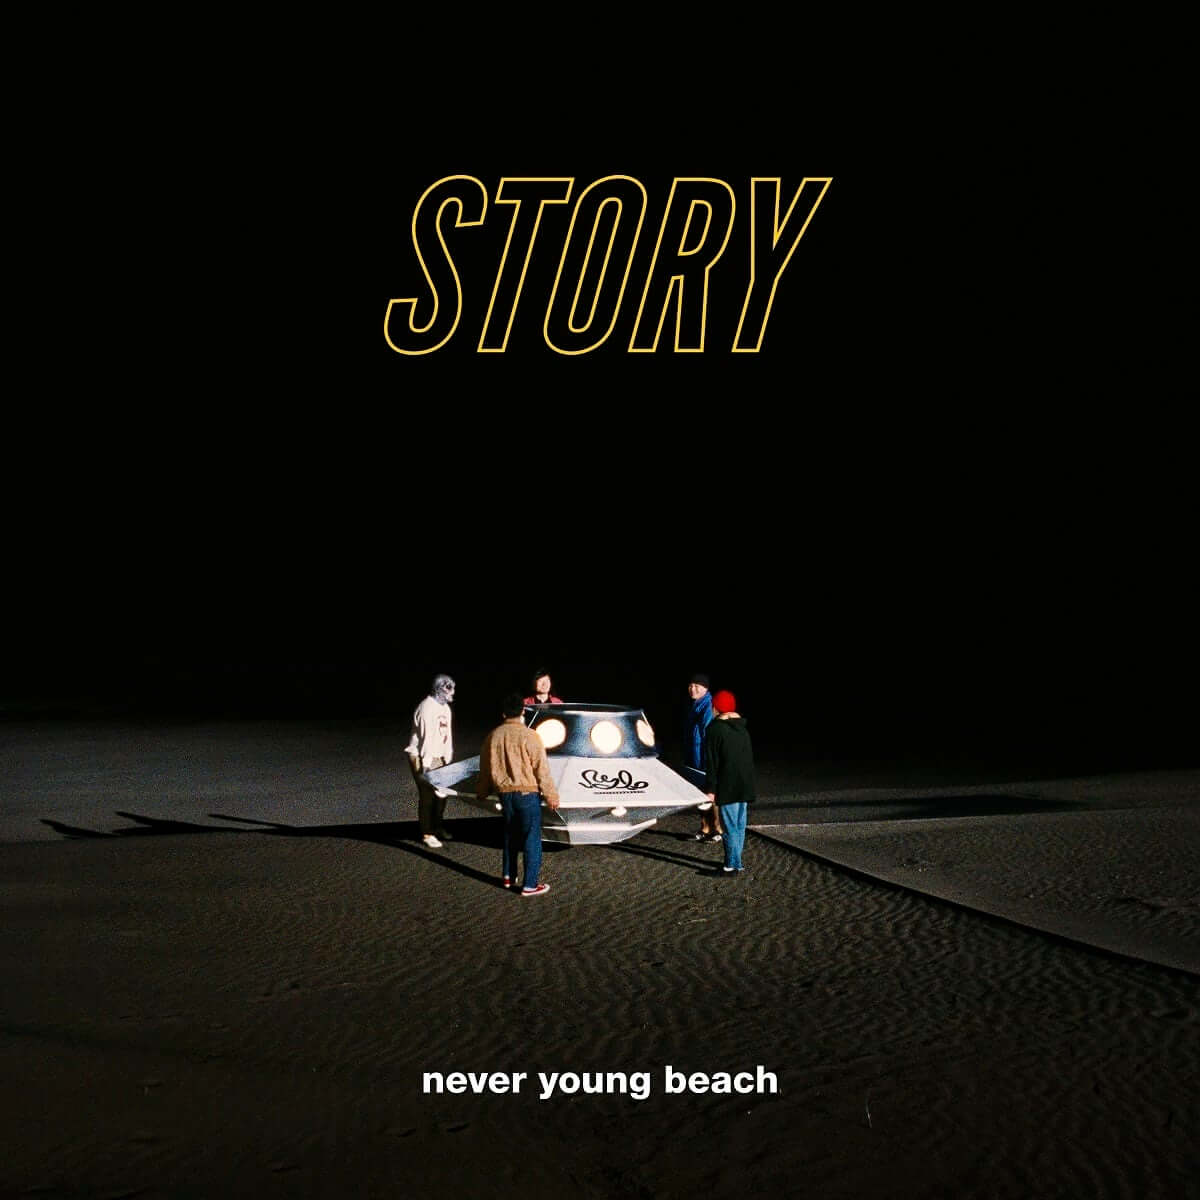 never young beach、ニューアルバムより新曲「STORY」が本日先行配信スタート music190410_neveryoungbeach_3-1200x1200